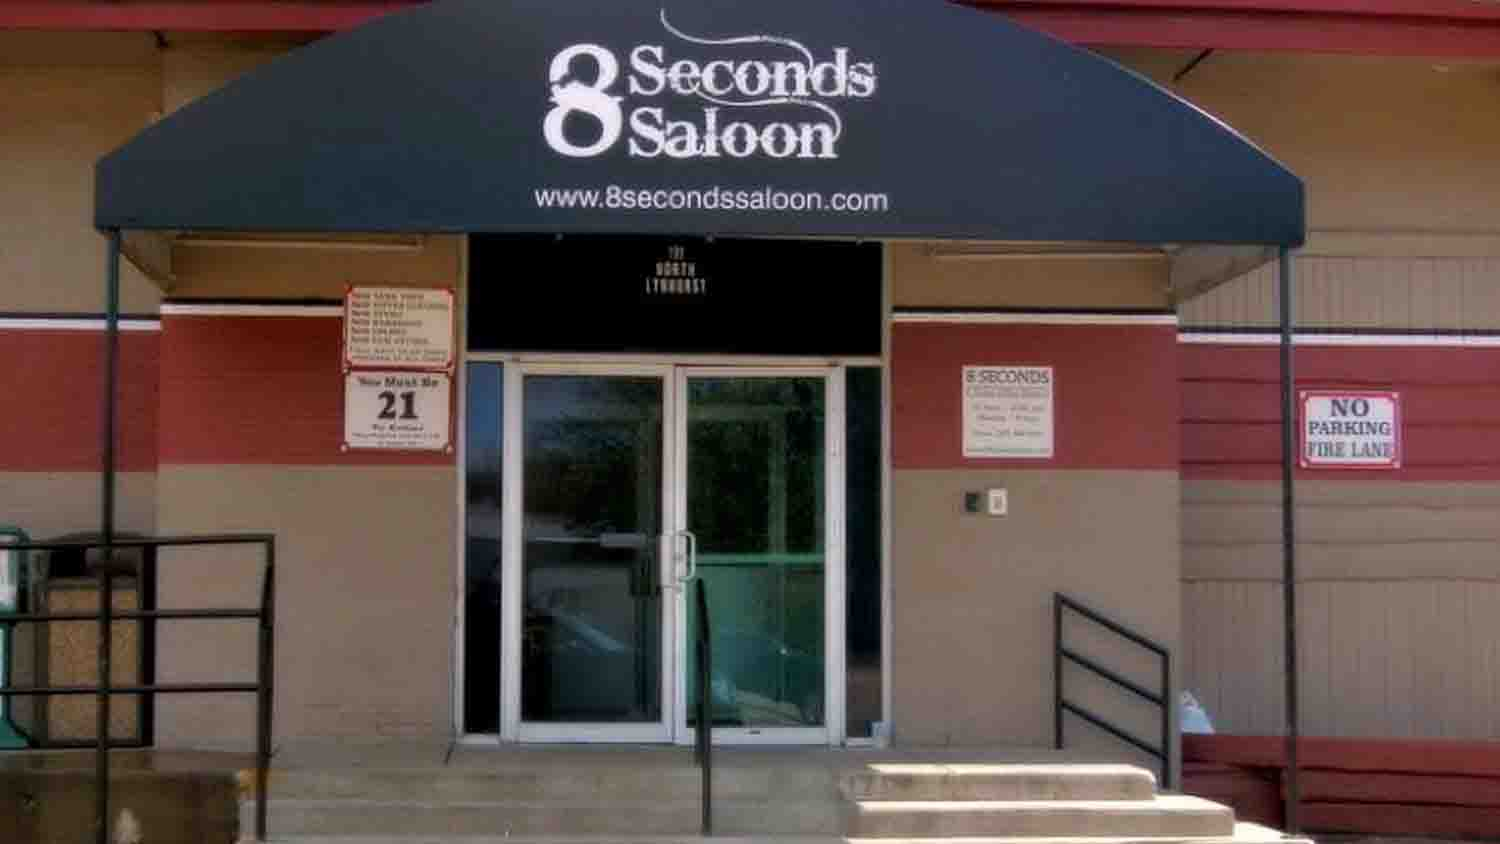 8 seconds saloon 1